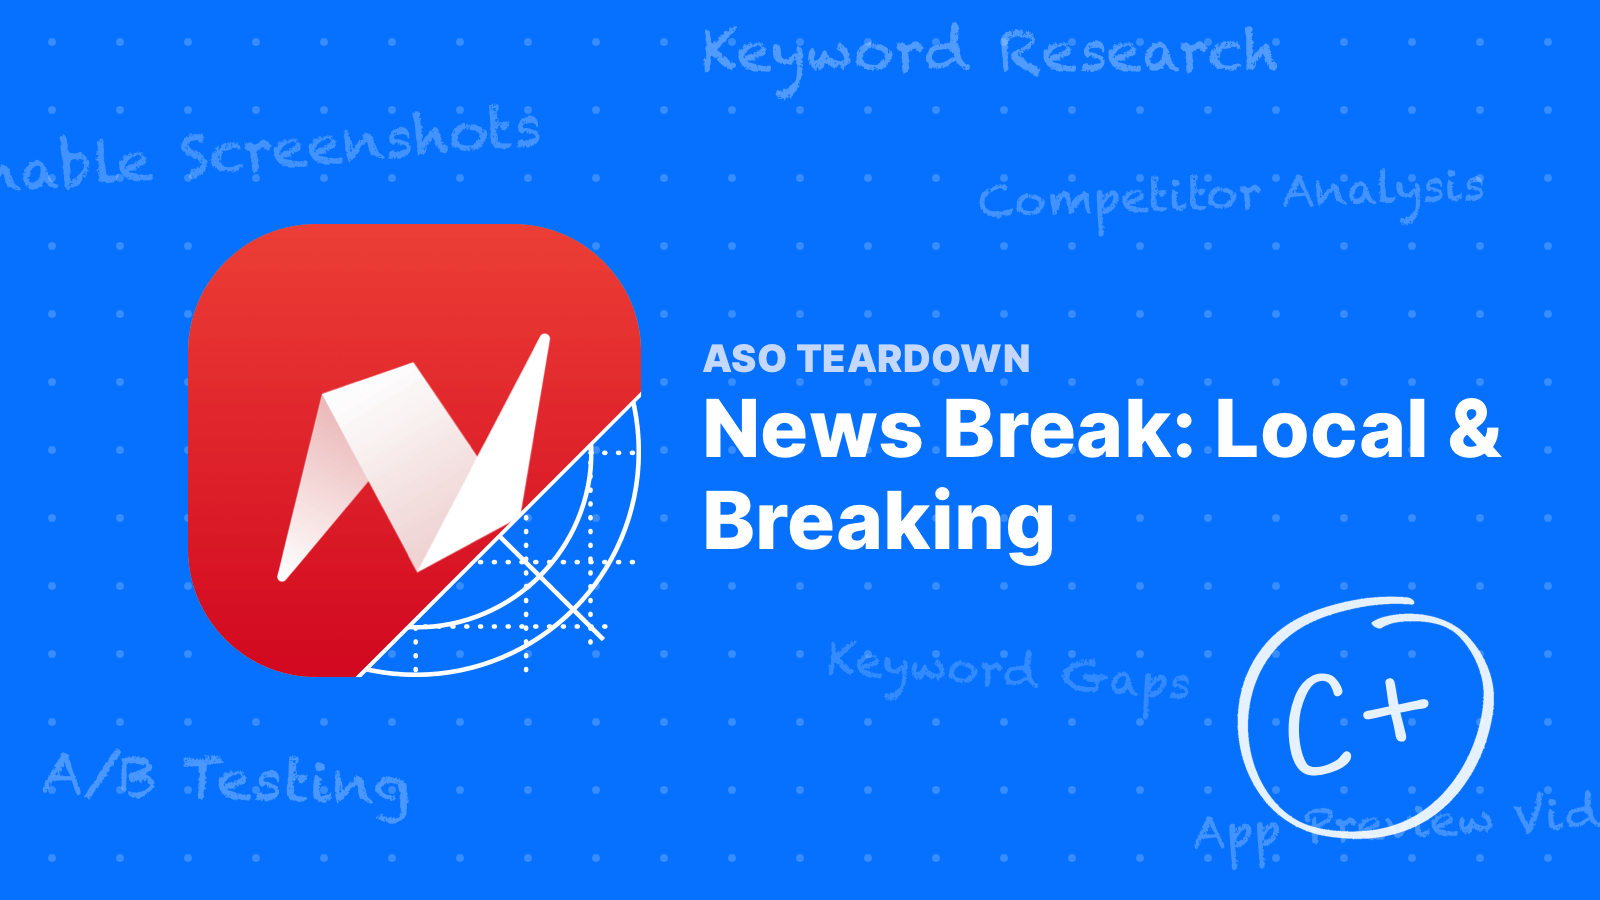 ASO Teardown: News Break Gets the Downloads, but Not Because of Its ASO Strategy...